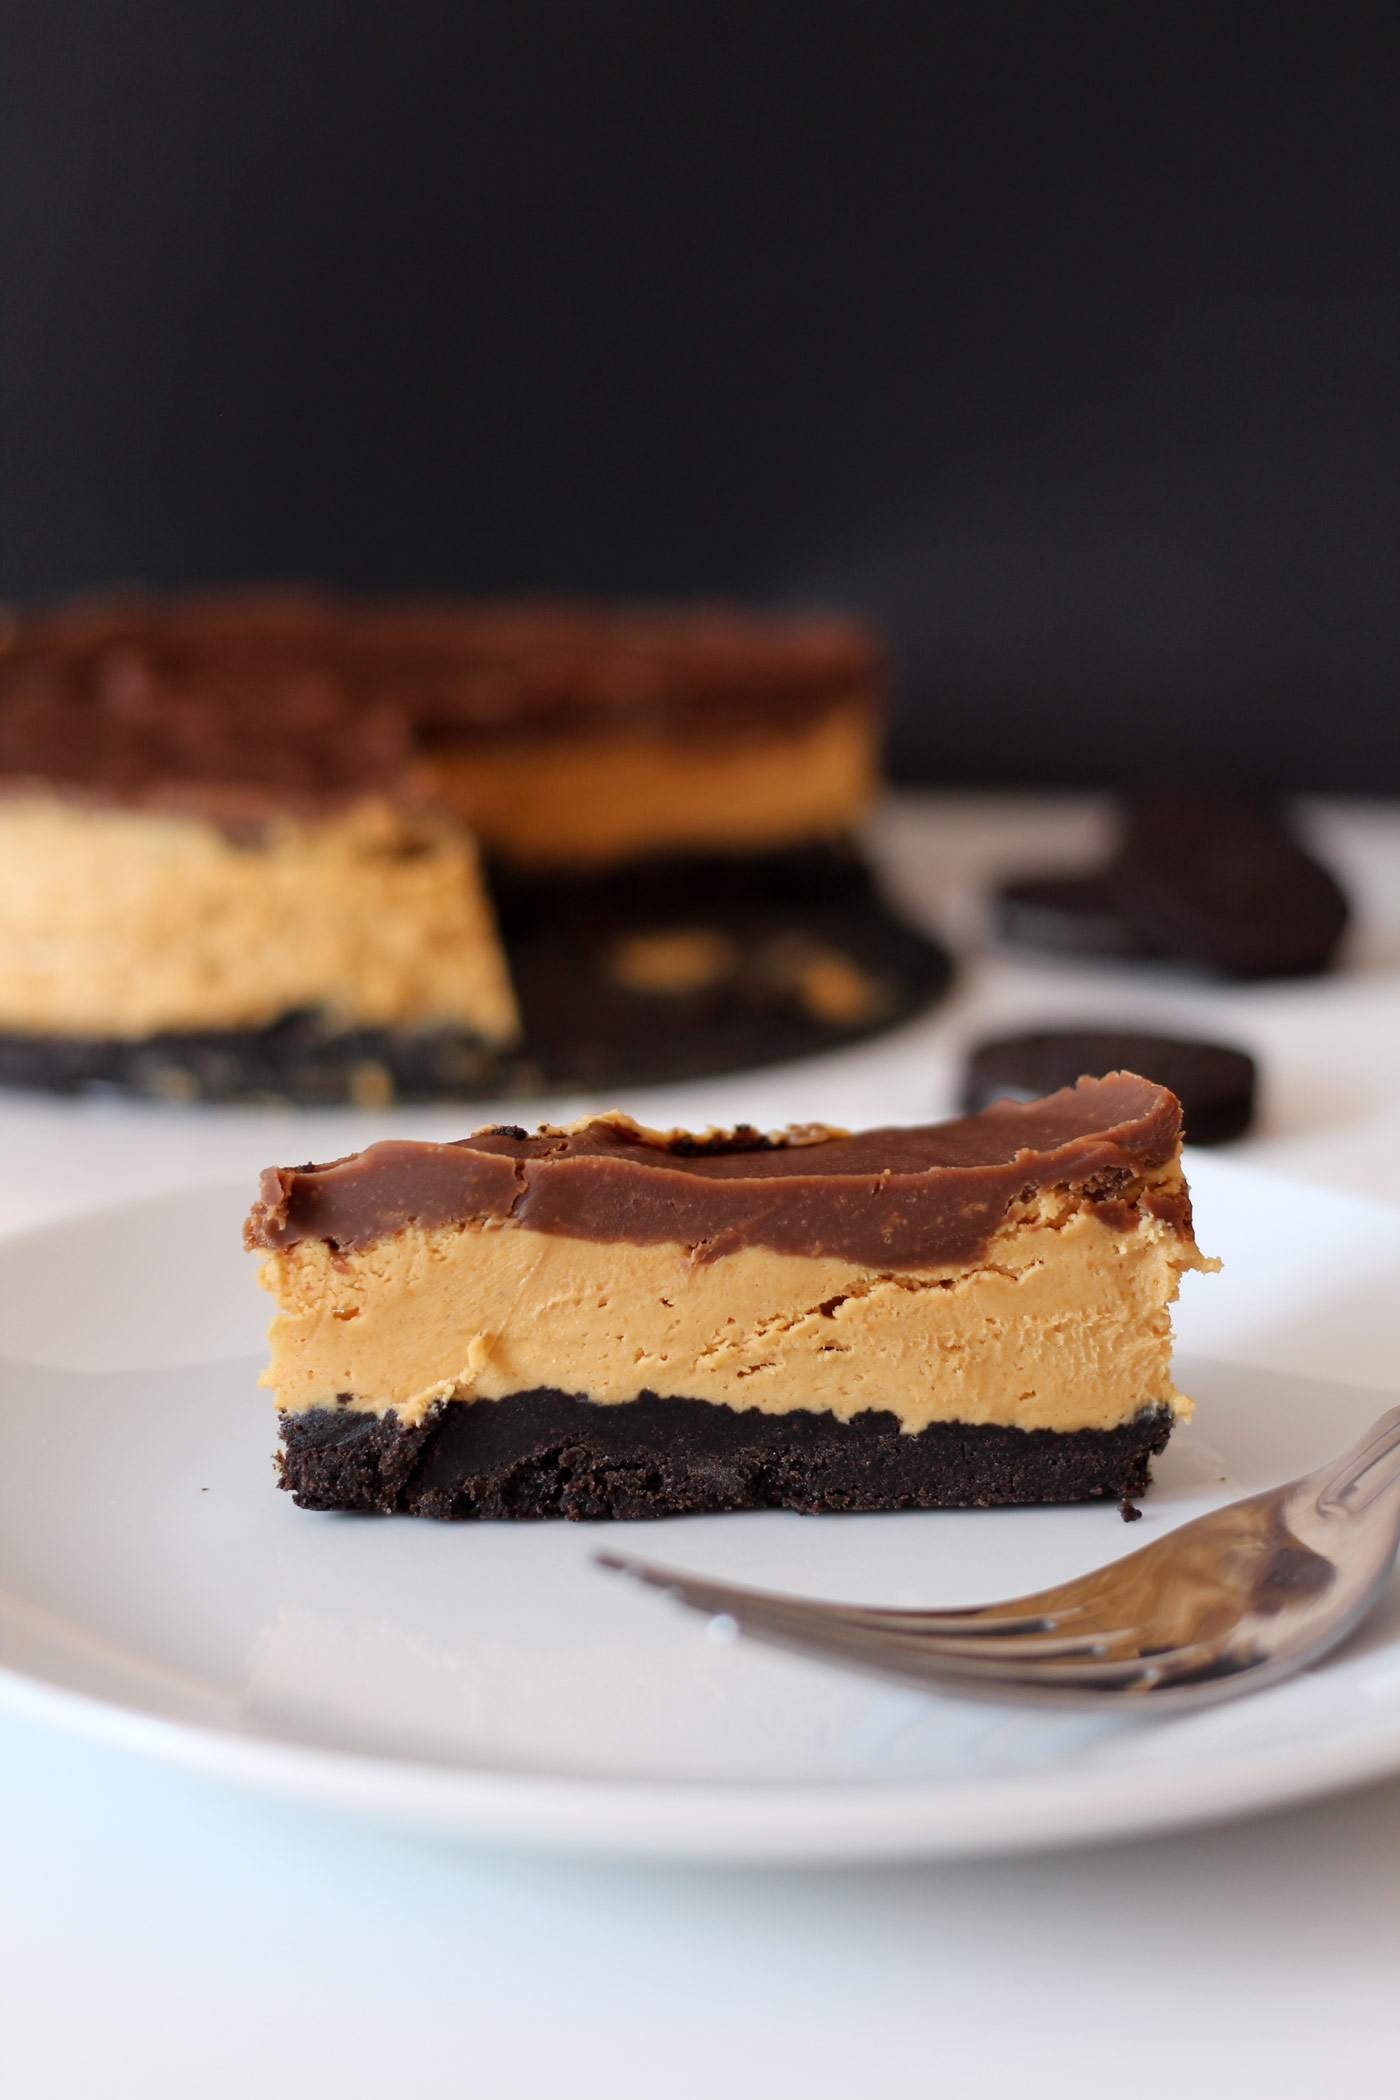 peanut-butter-oreo-chocolate-pie-cake-triple-layer-dessert-2